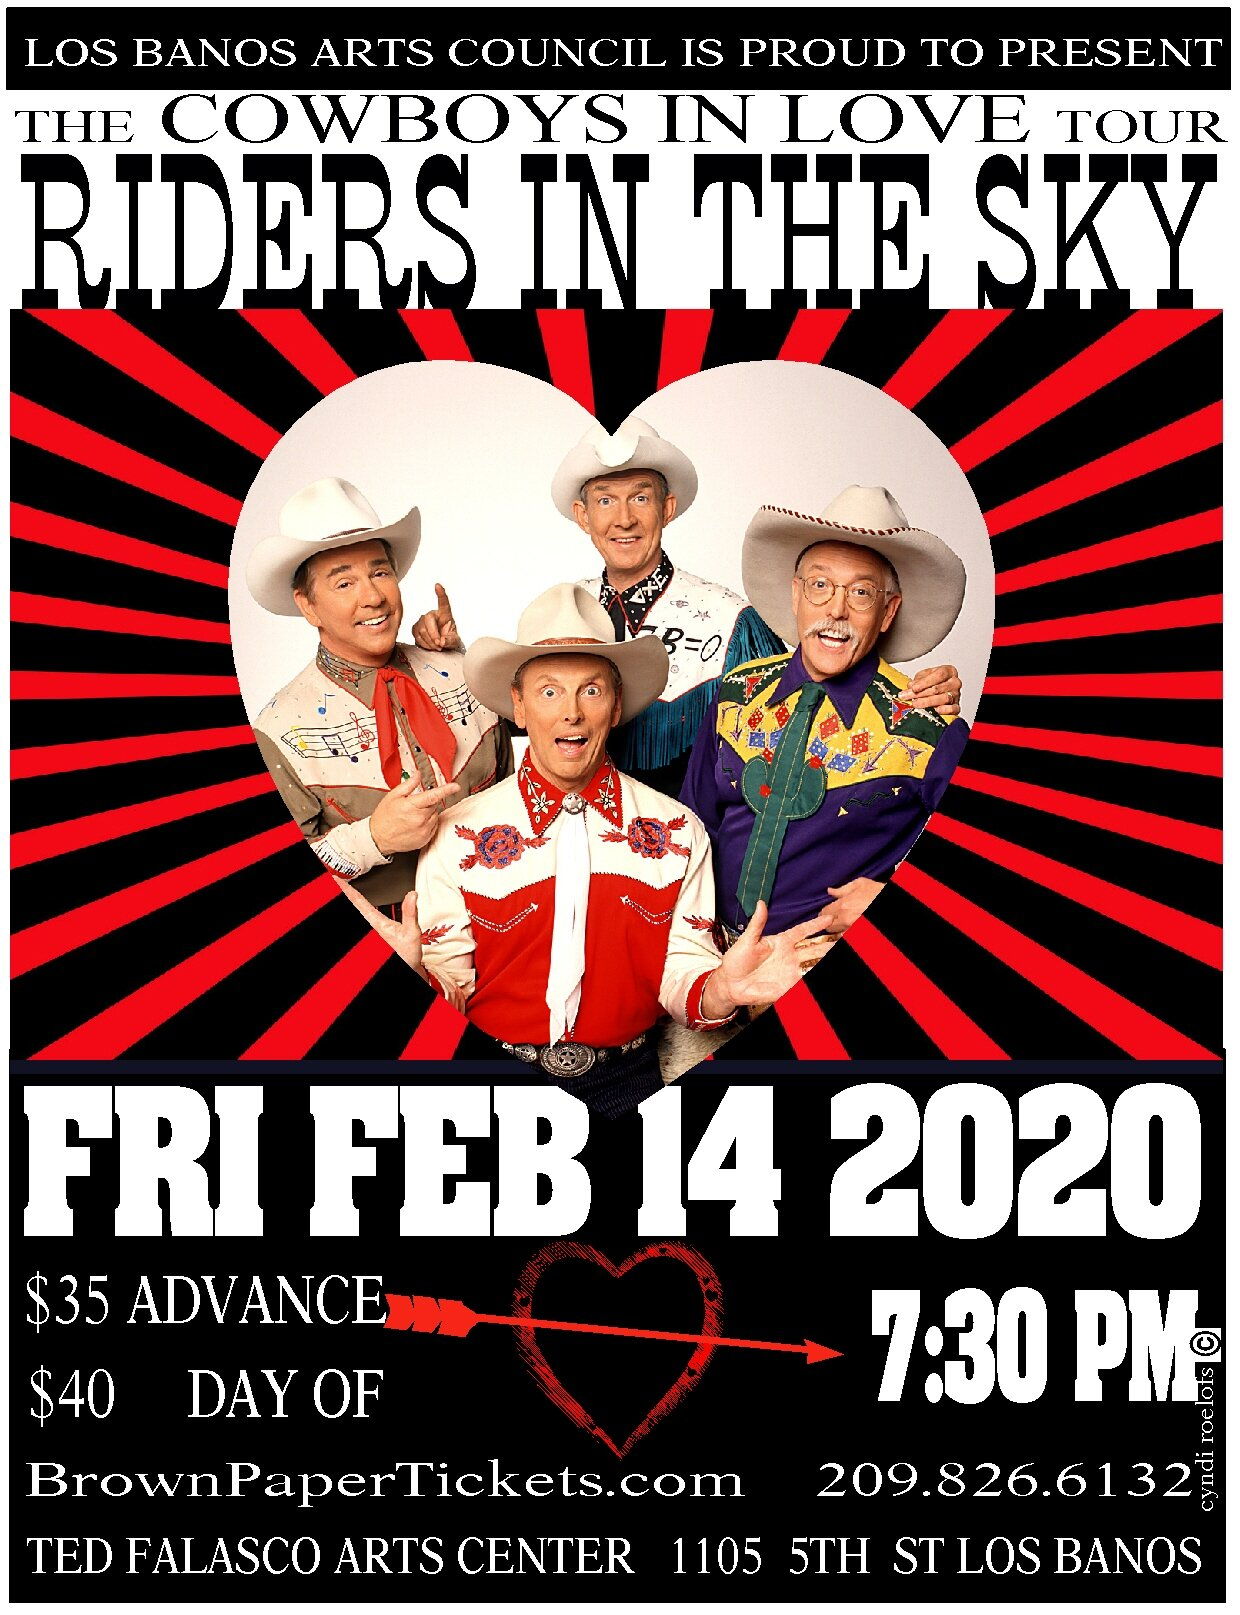 Riders in the sky 2020sunburstBLOWres.jpg